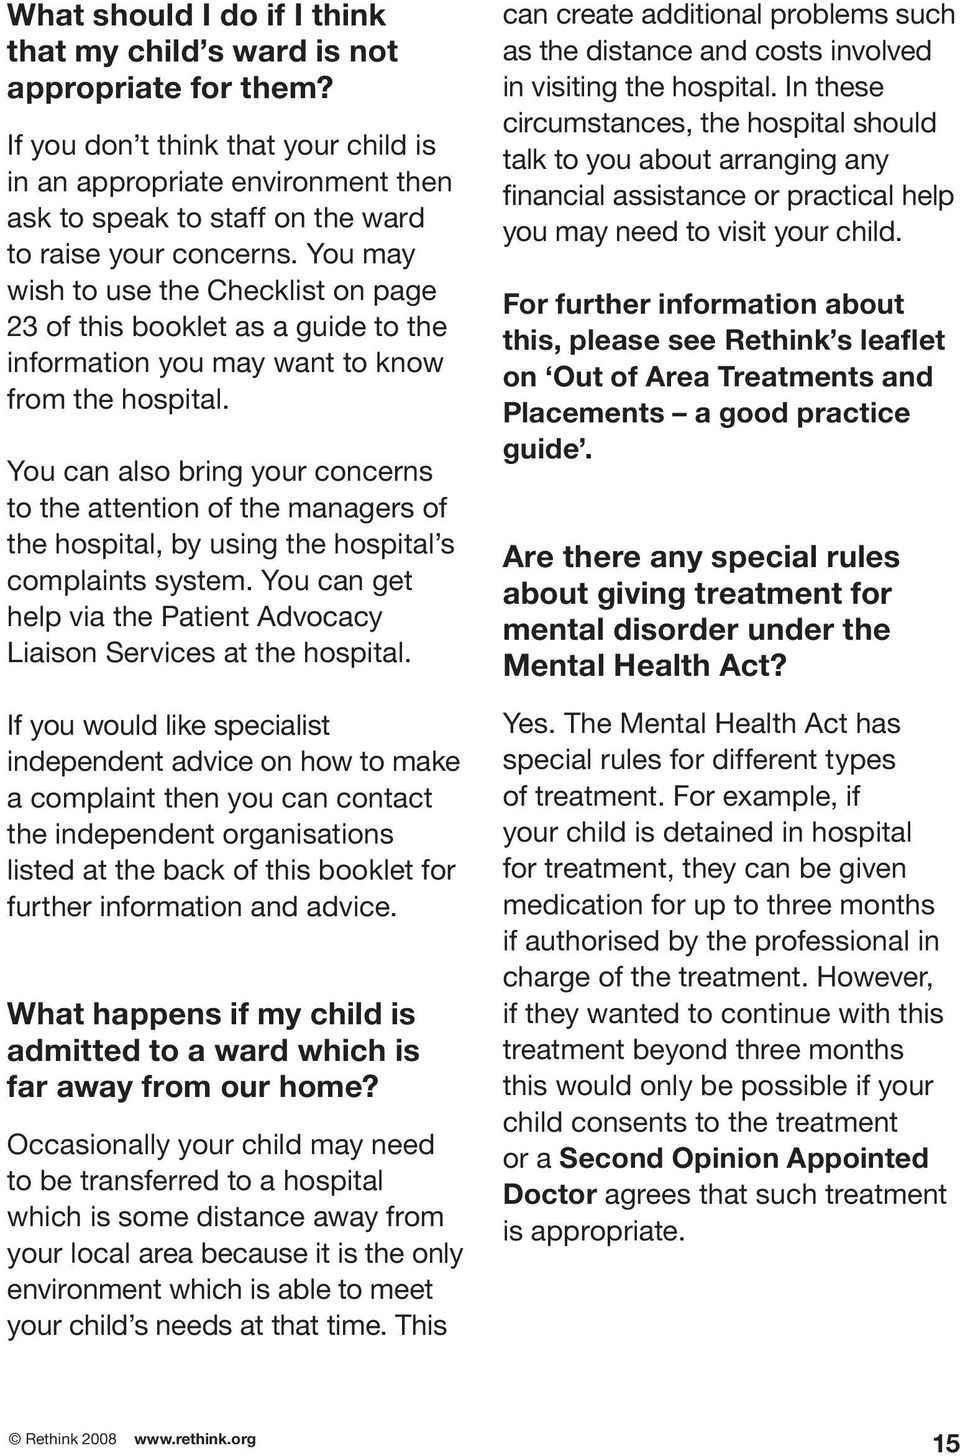 You may wish to use the Checklist on page 23 of this booklet as a guide to the information you may want to know from the hospital.